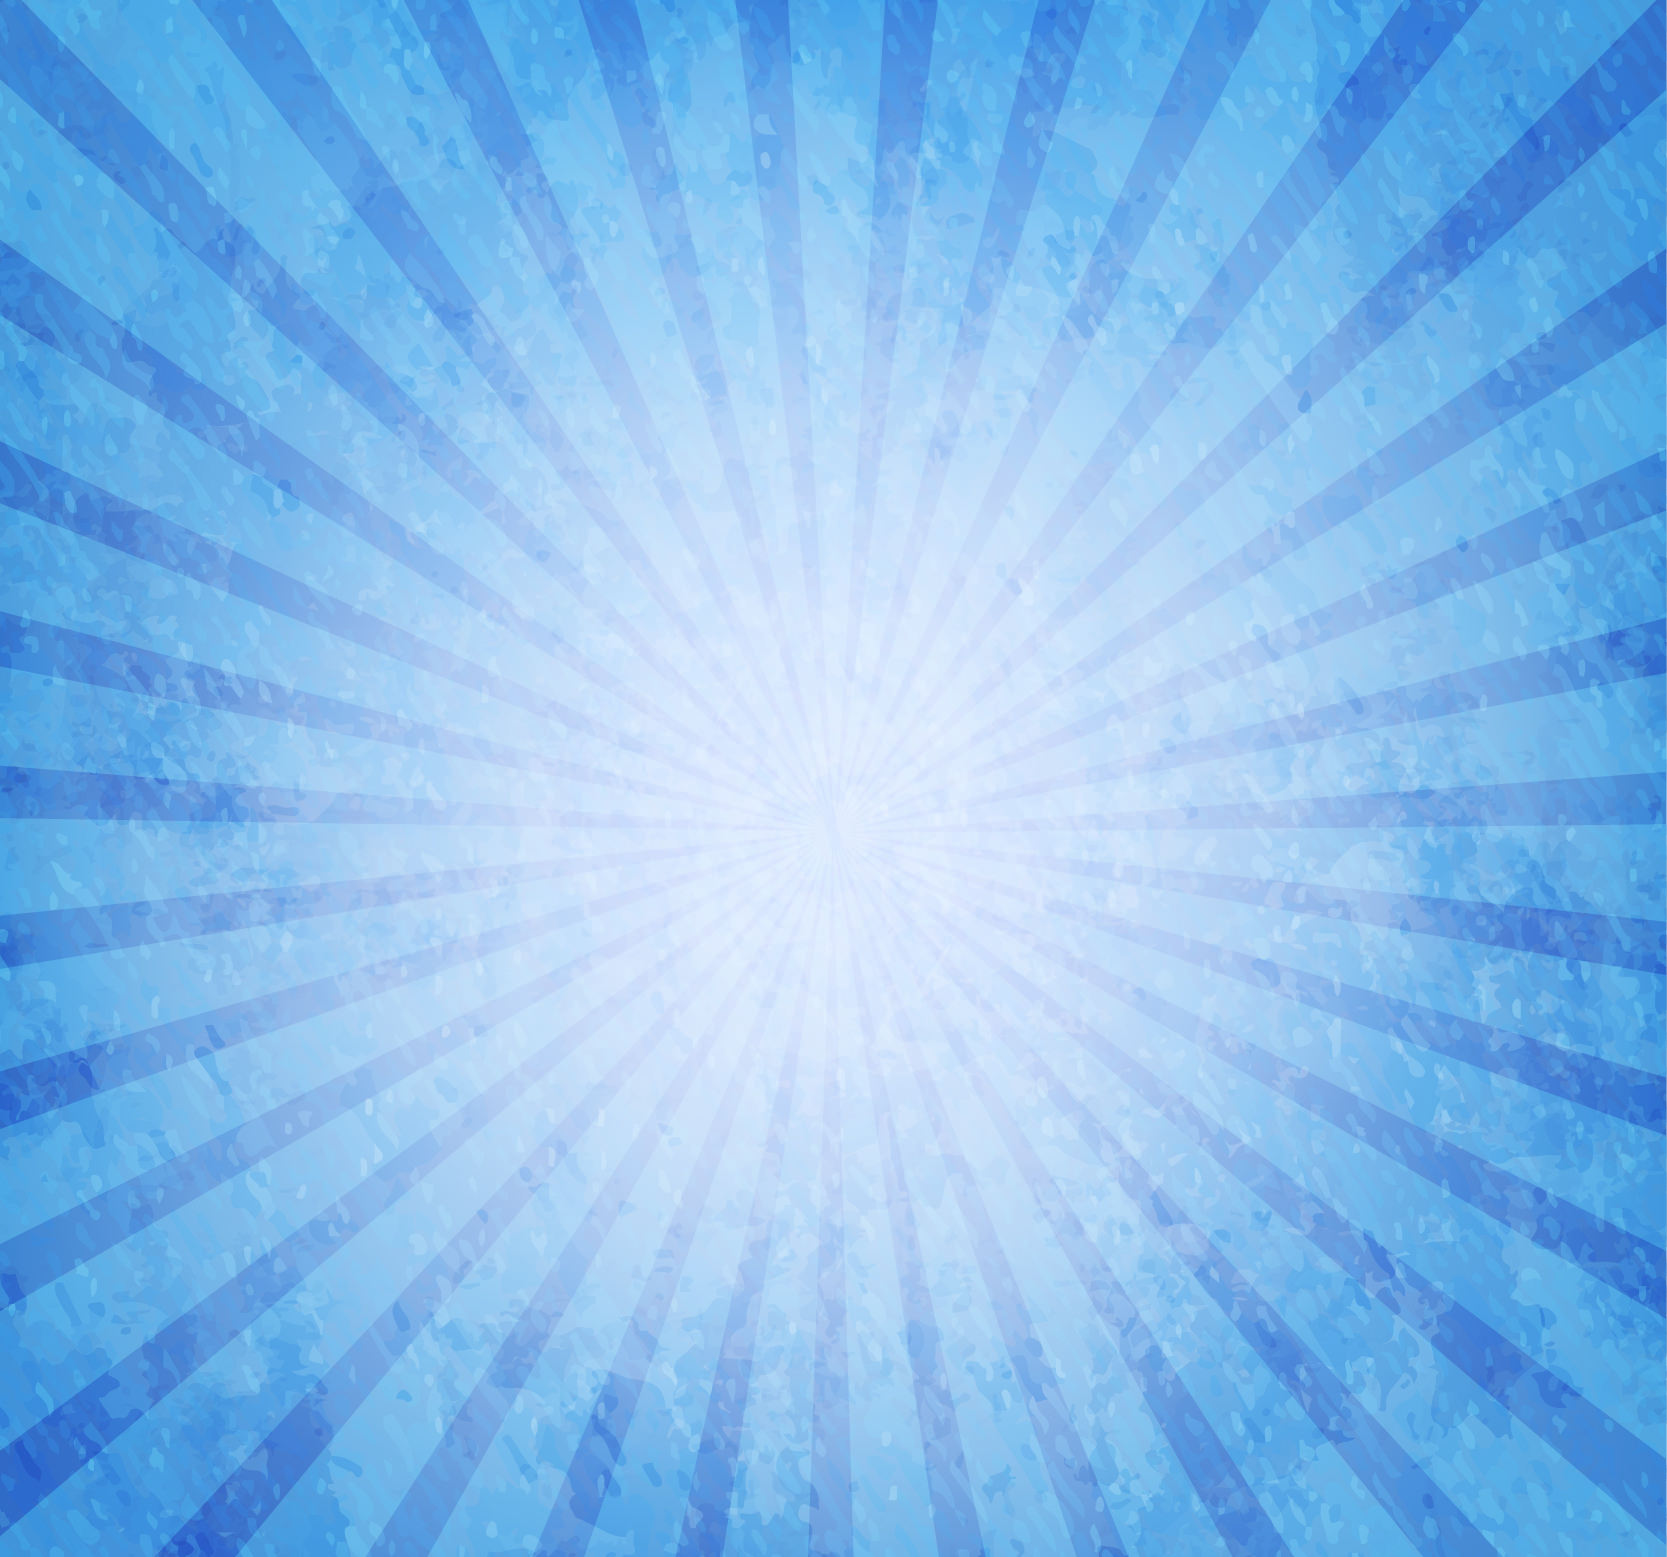 Blue Grunge Sun Burst Background